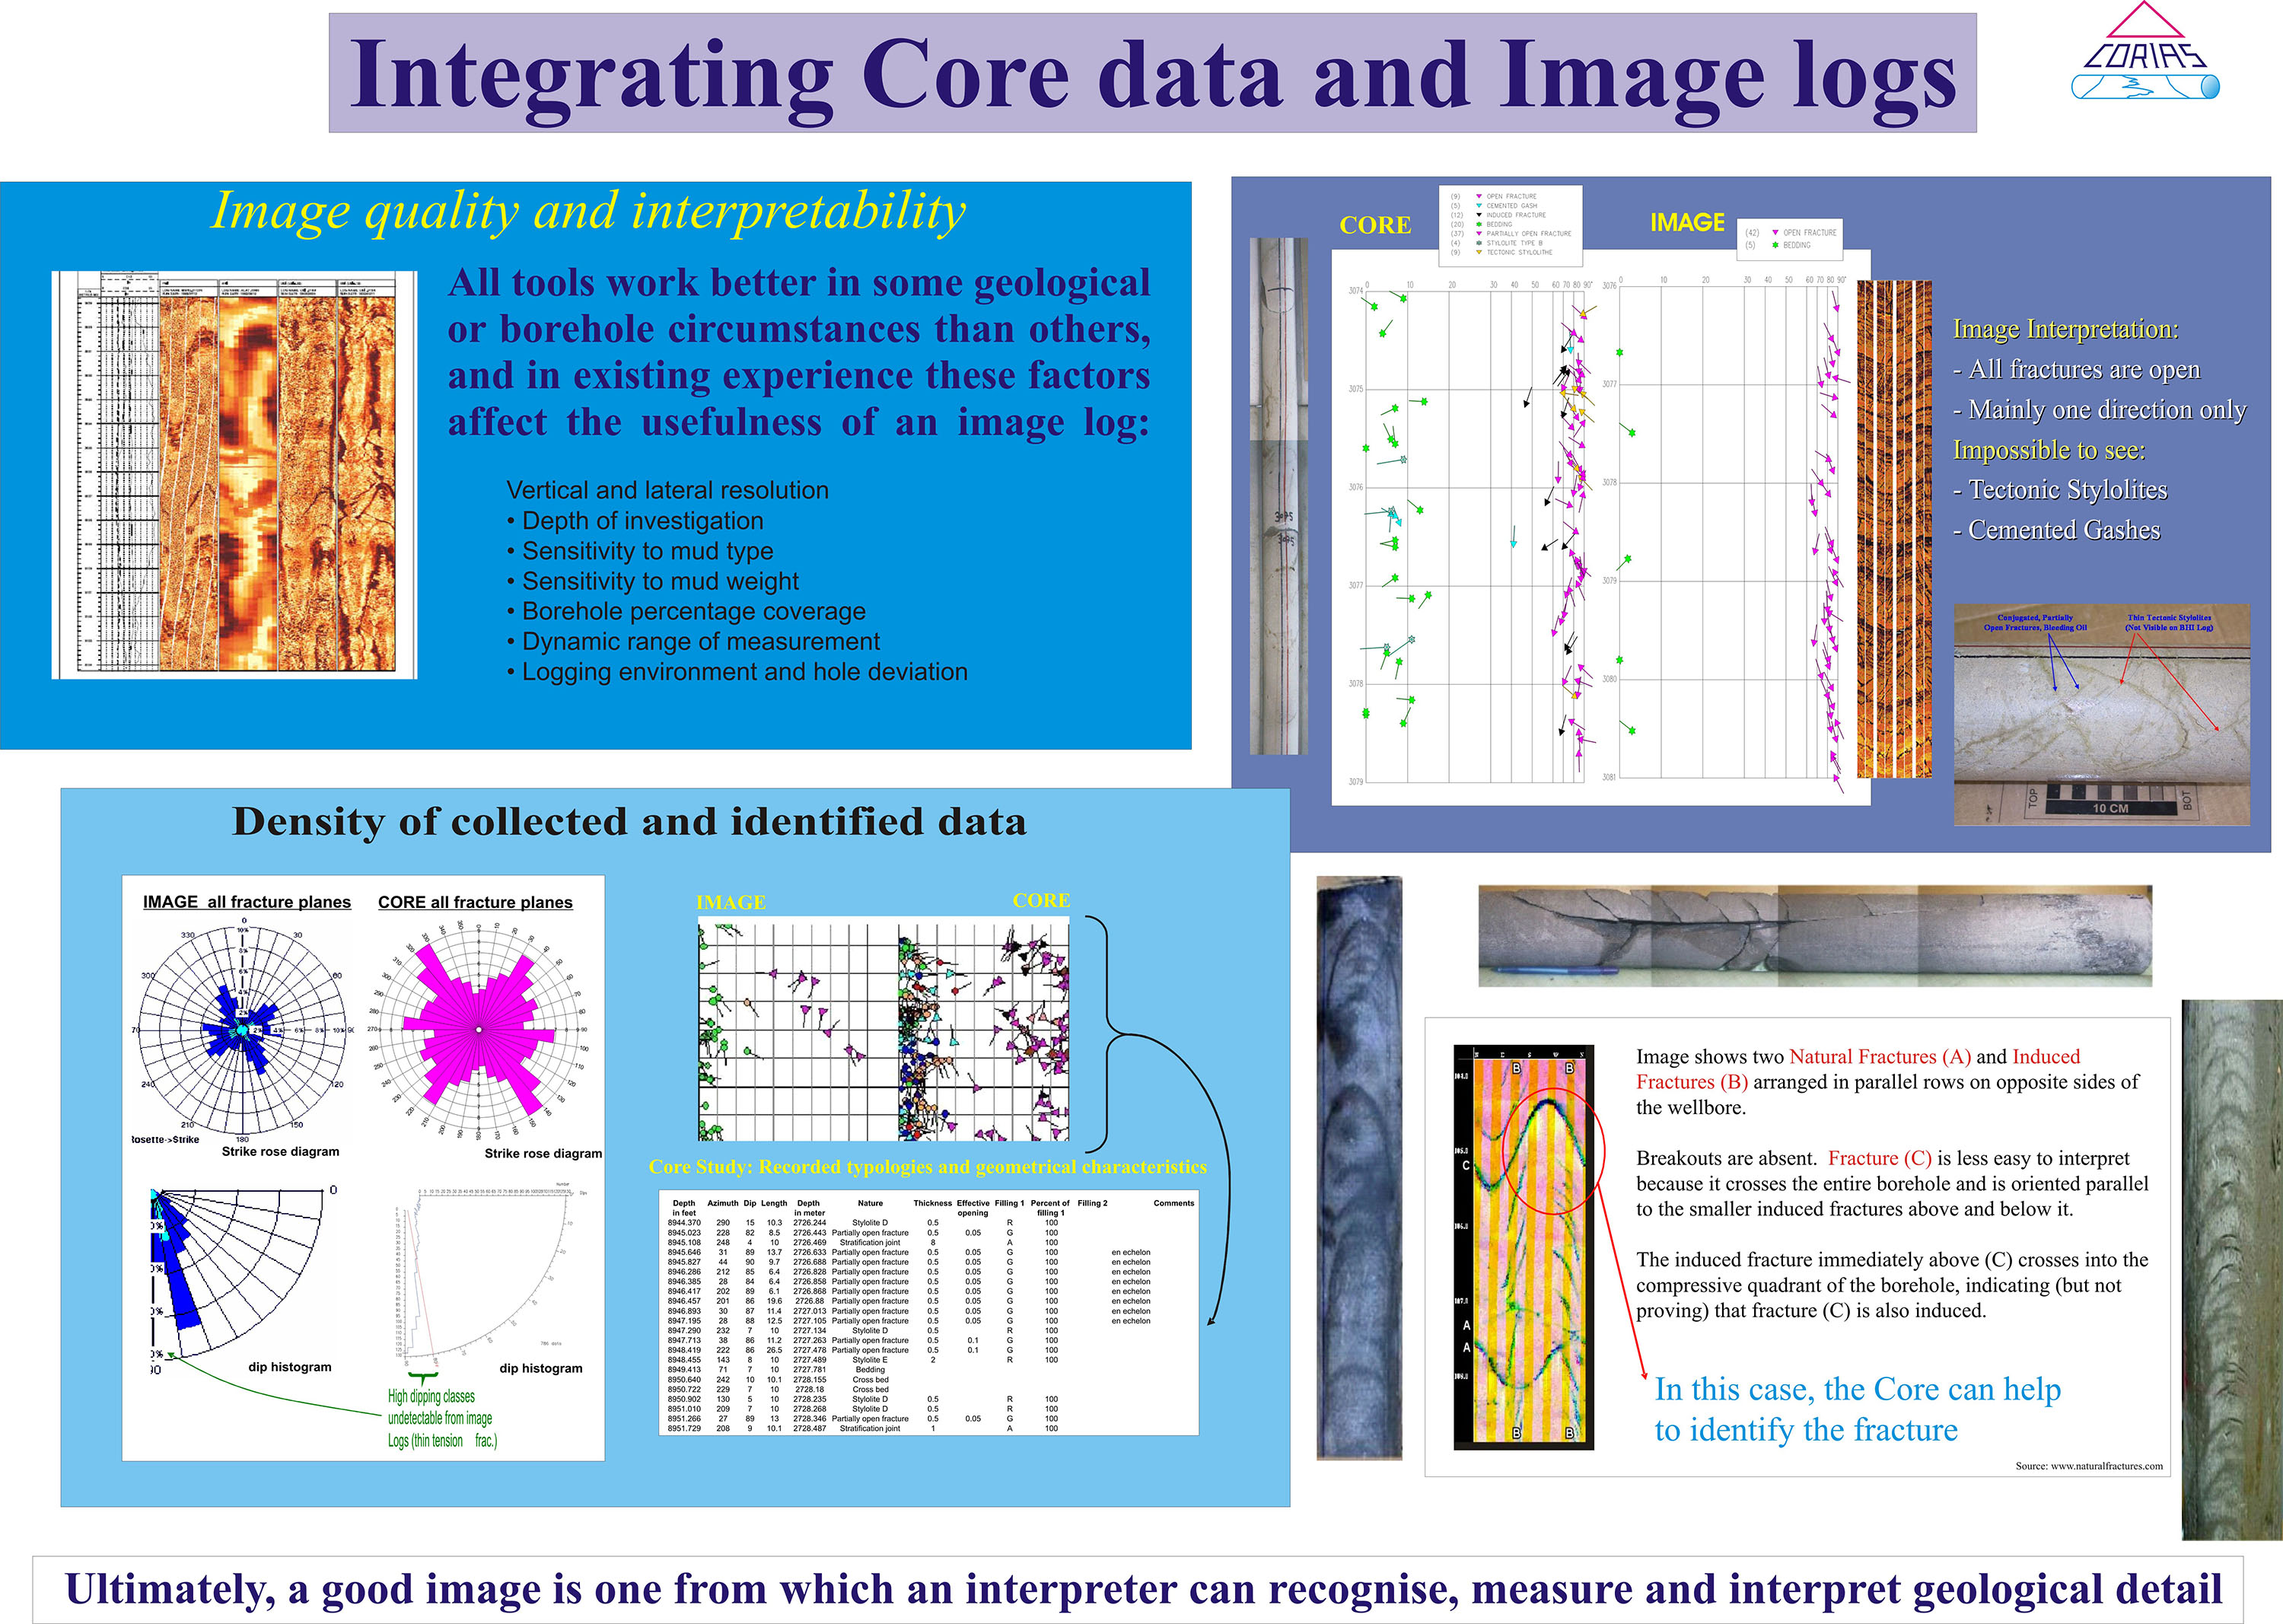 Corias Integrating core data and image logs